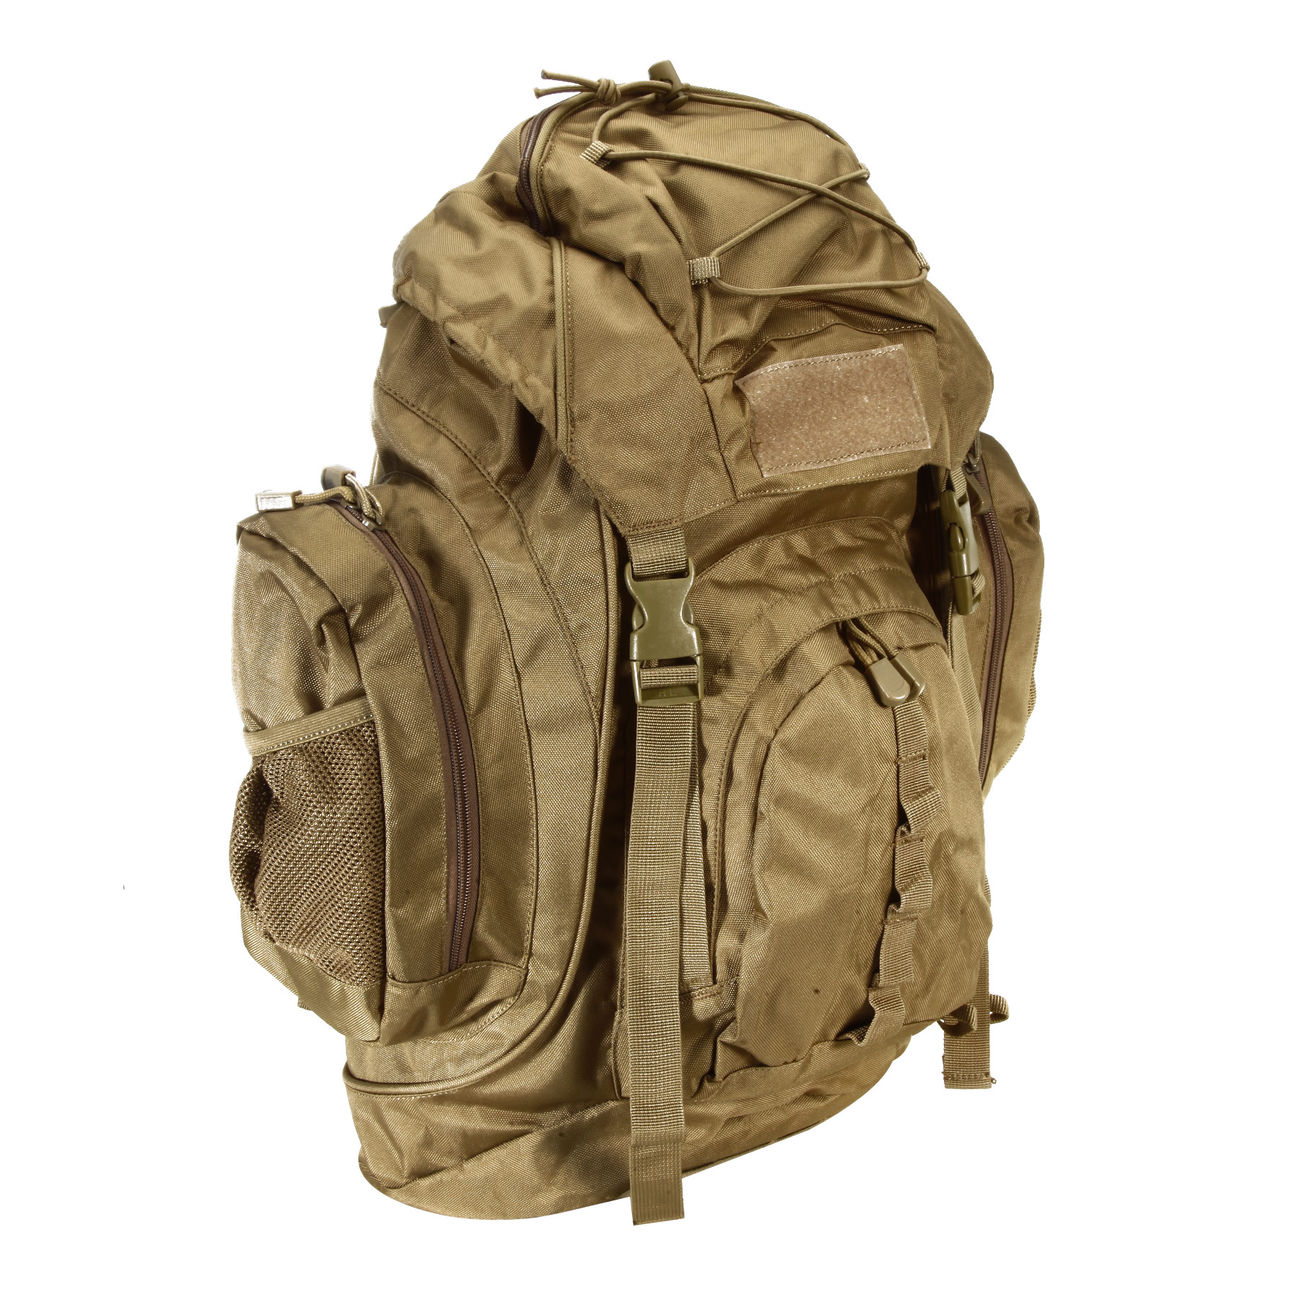 Defcon 5 Tactical Assault Rucksack Hydro 50L coyote tan 1